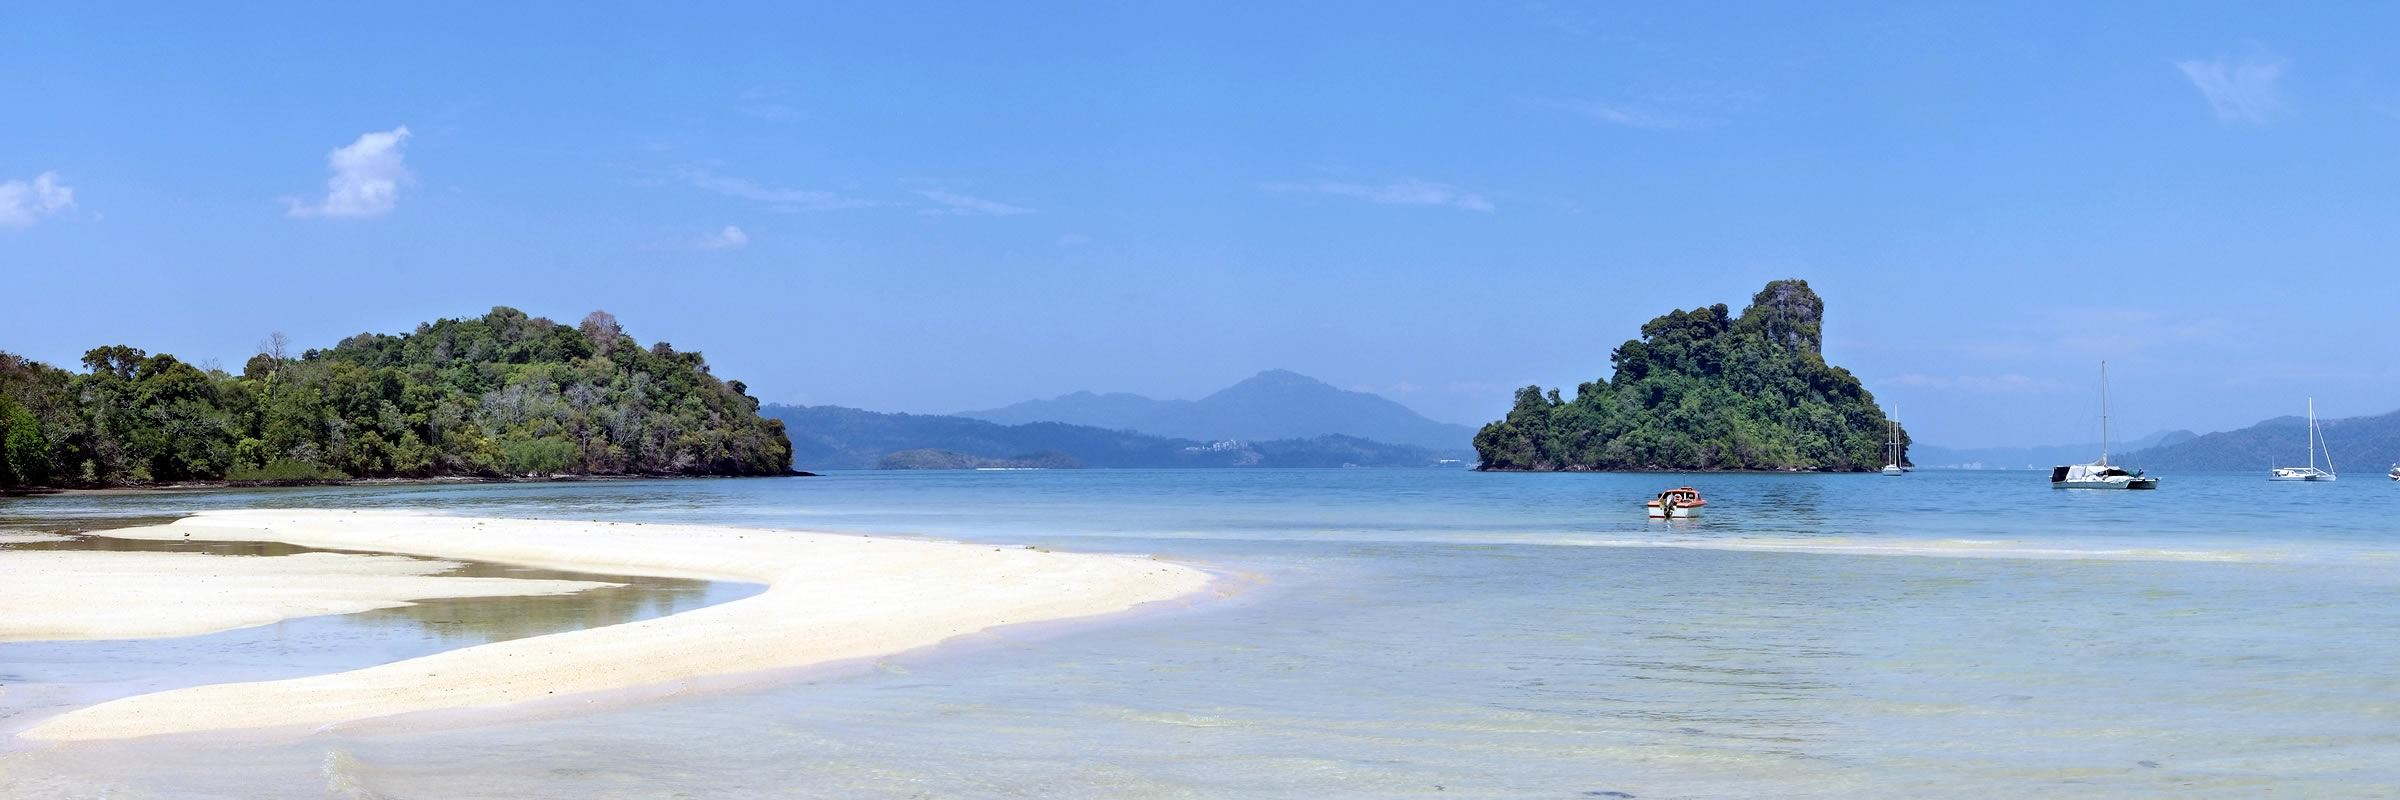 Malaysia, Langkawi: sea, holidays, beaches, tours, attractions, tourist reviews 86